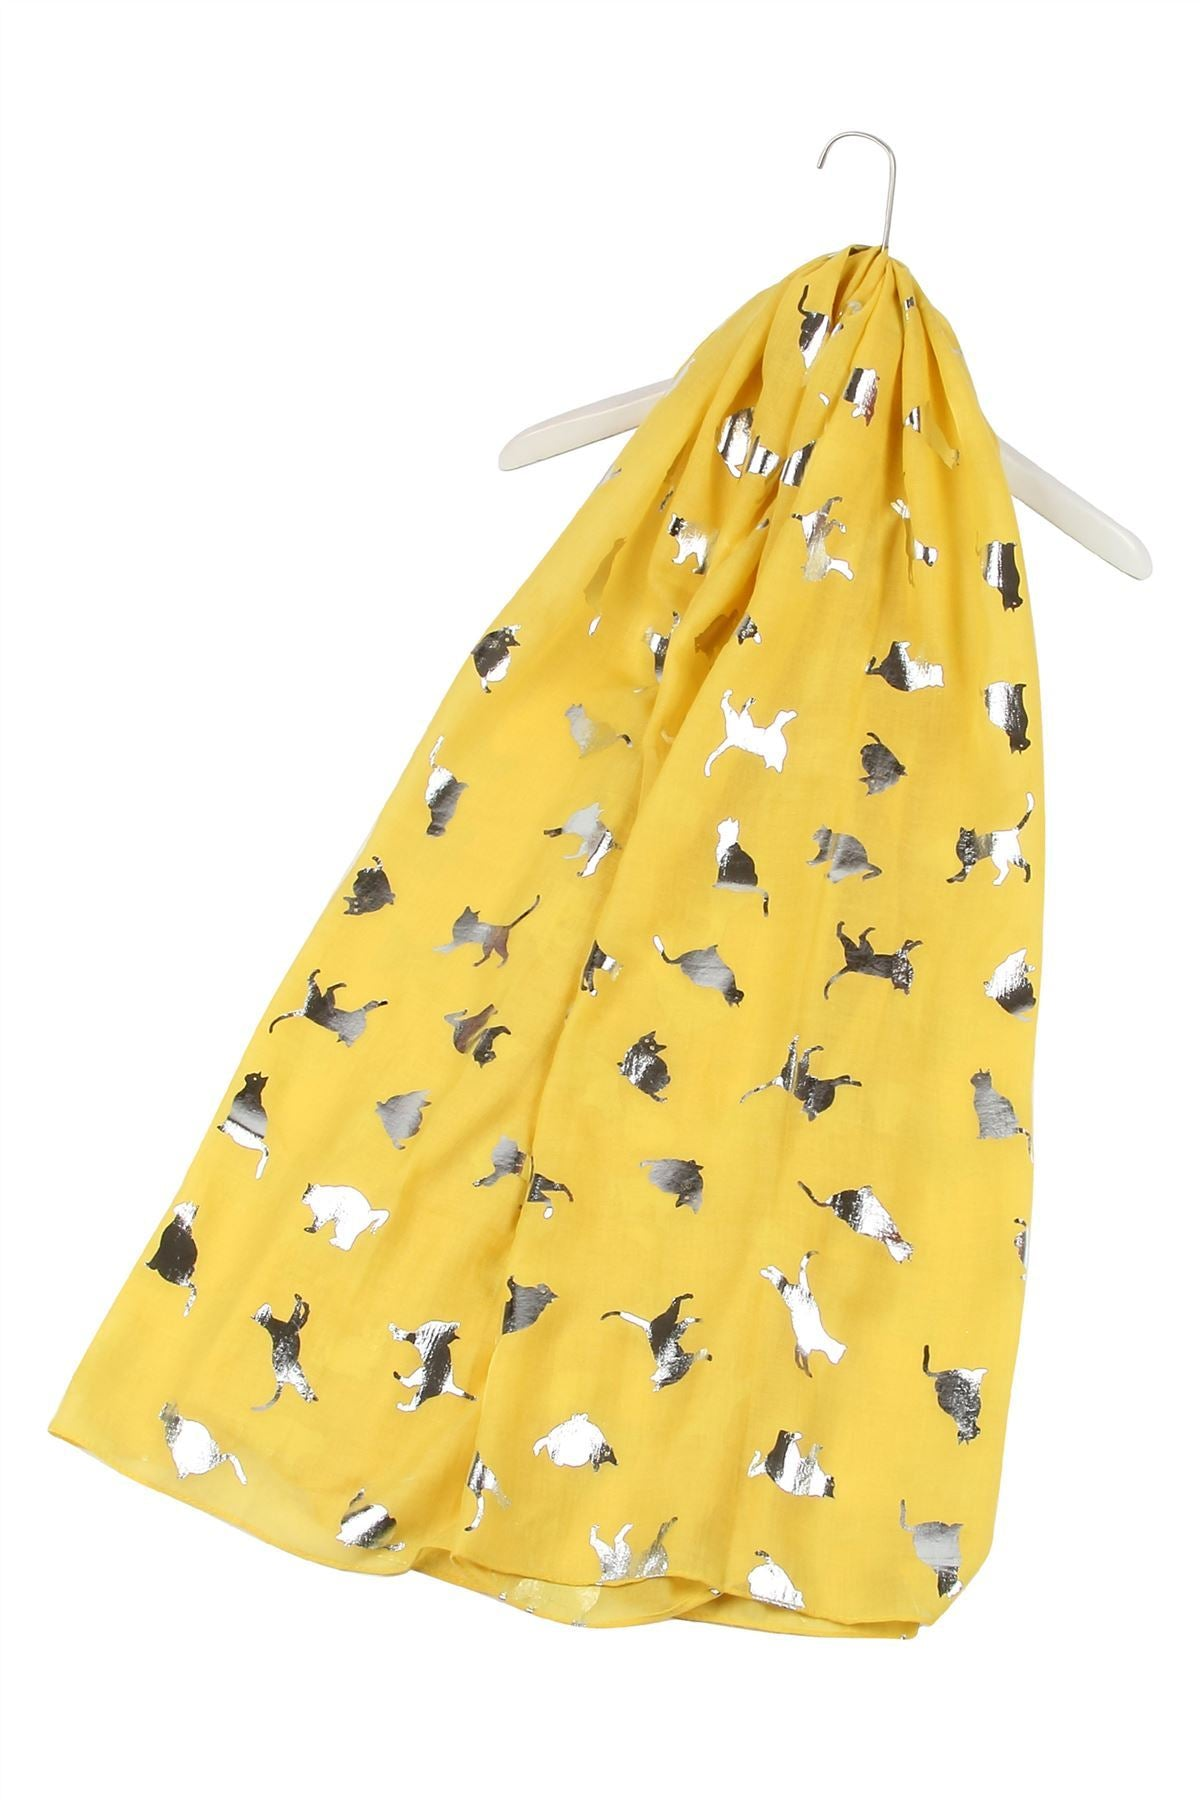 Silver Foiled Cat Print Frayed Scarf - YELLOW